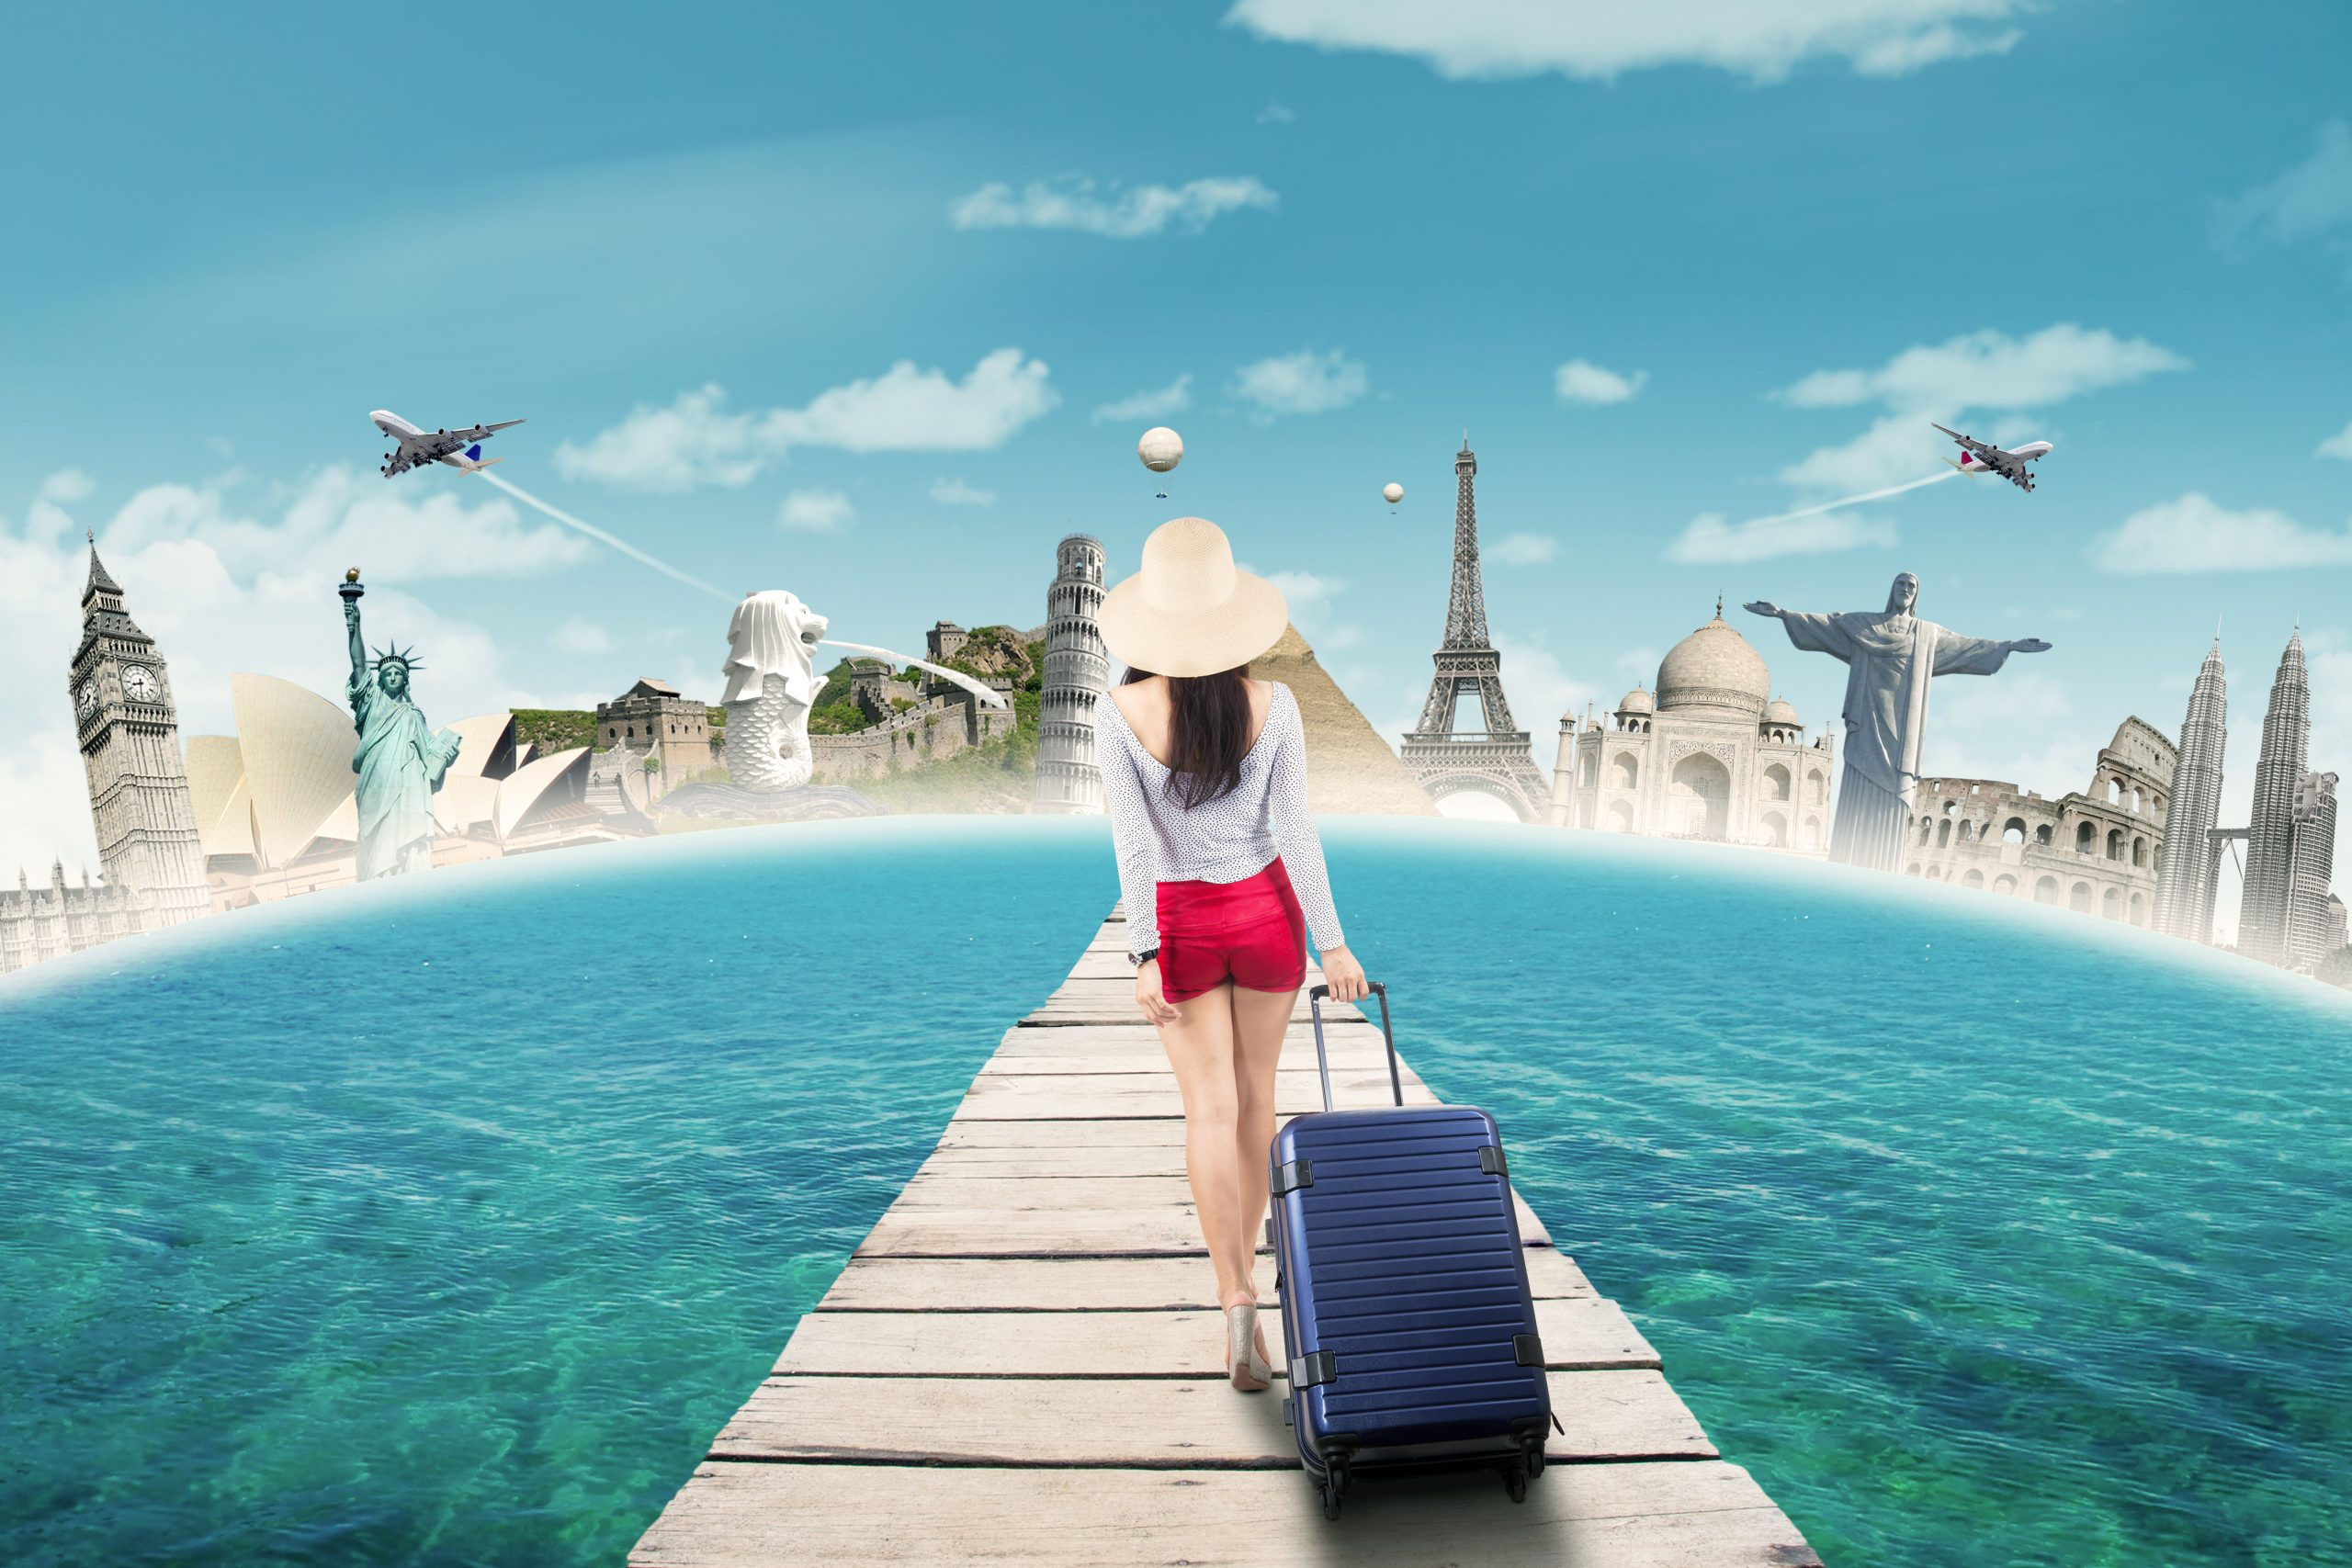 Why 'Vacation' Should Be in Every Entrepreneur's Dictionary